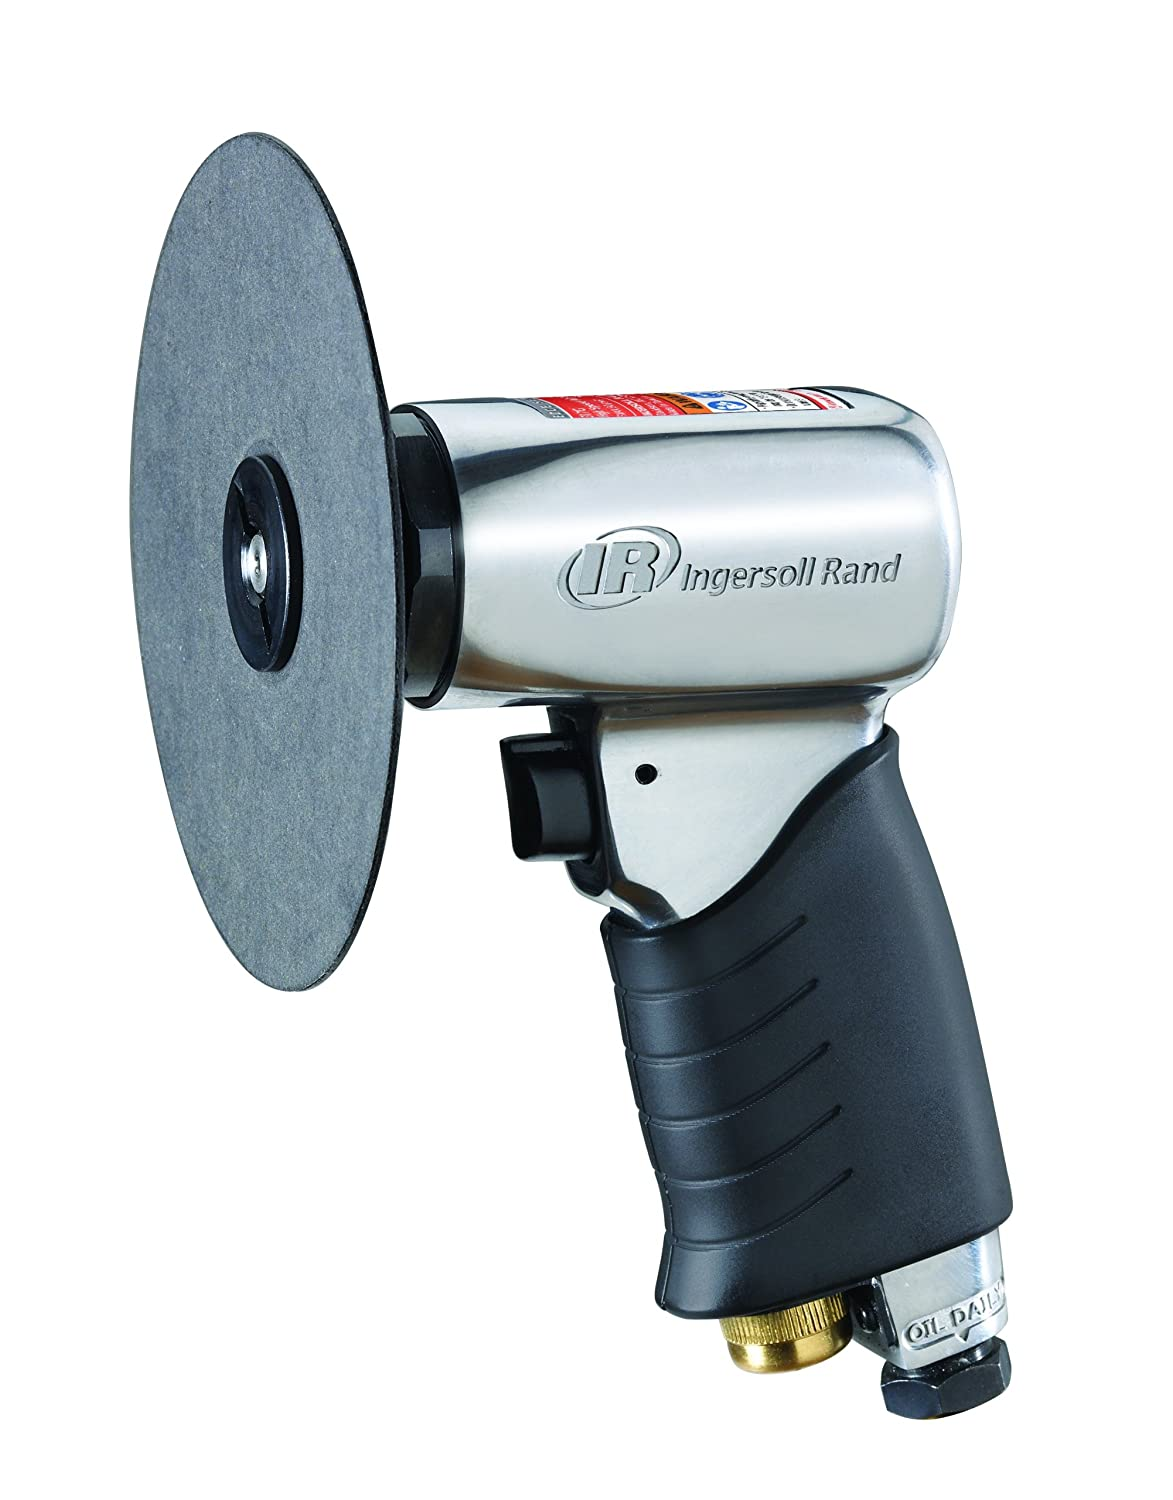 Ingersoll Rand 317G Edge Series High Speed Air Sander, Silver